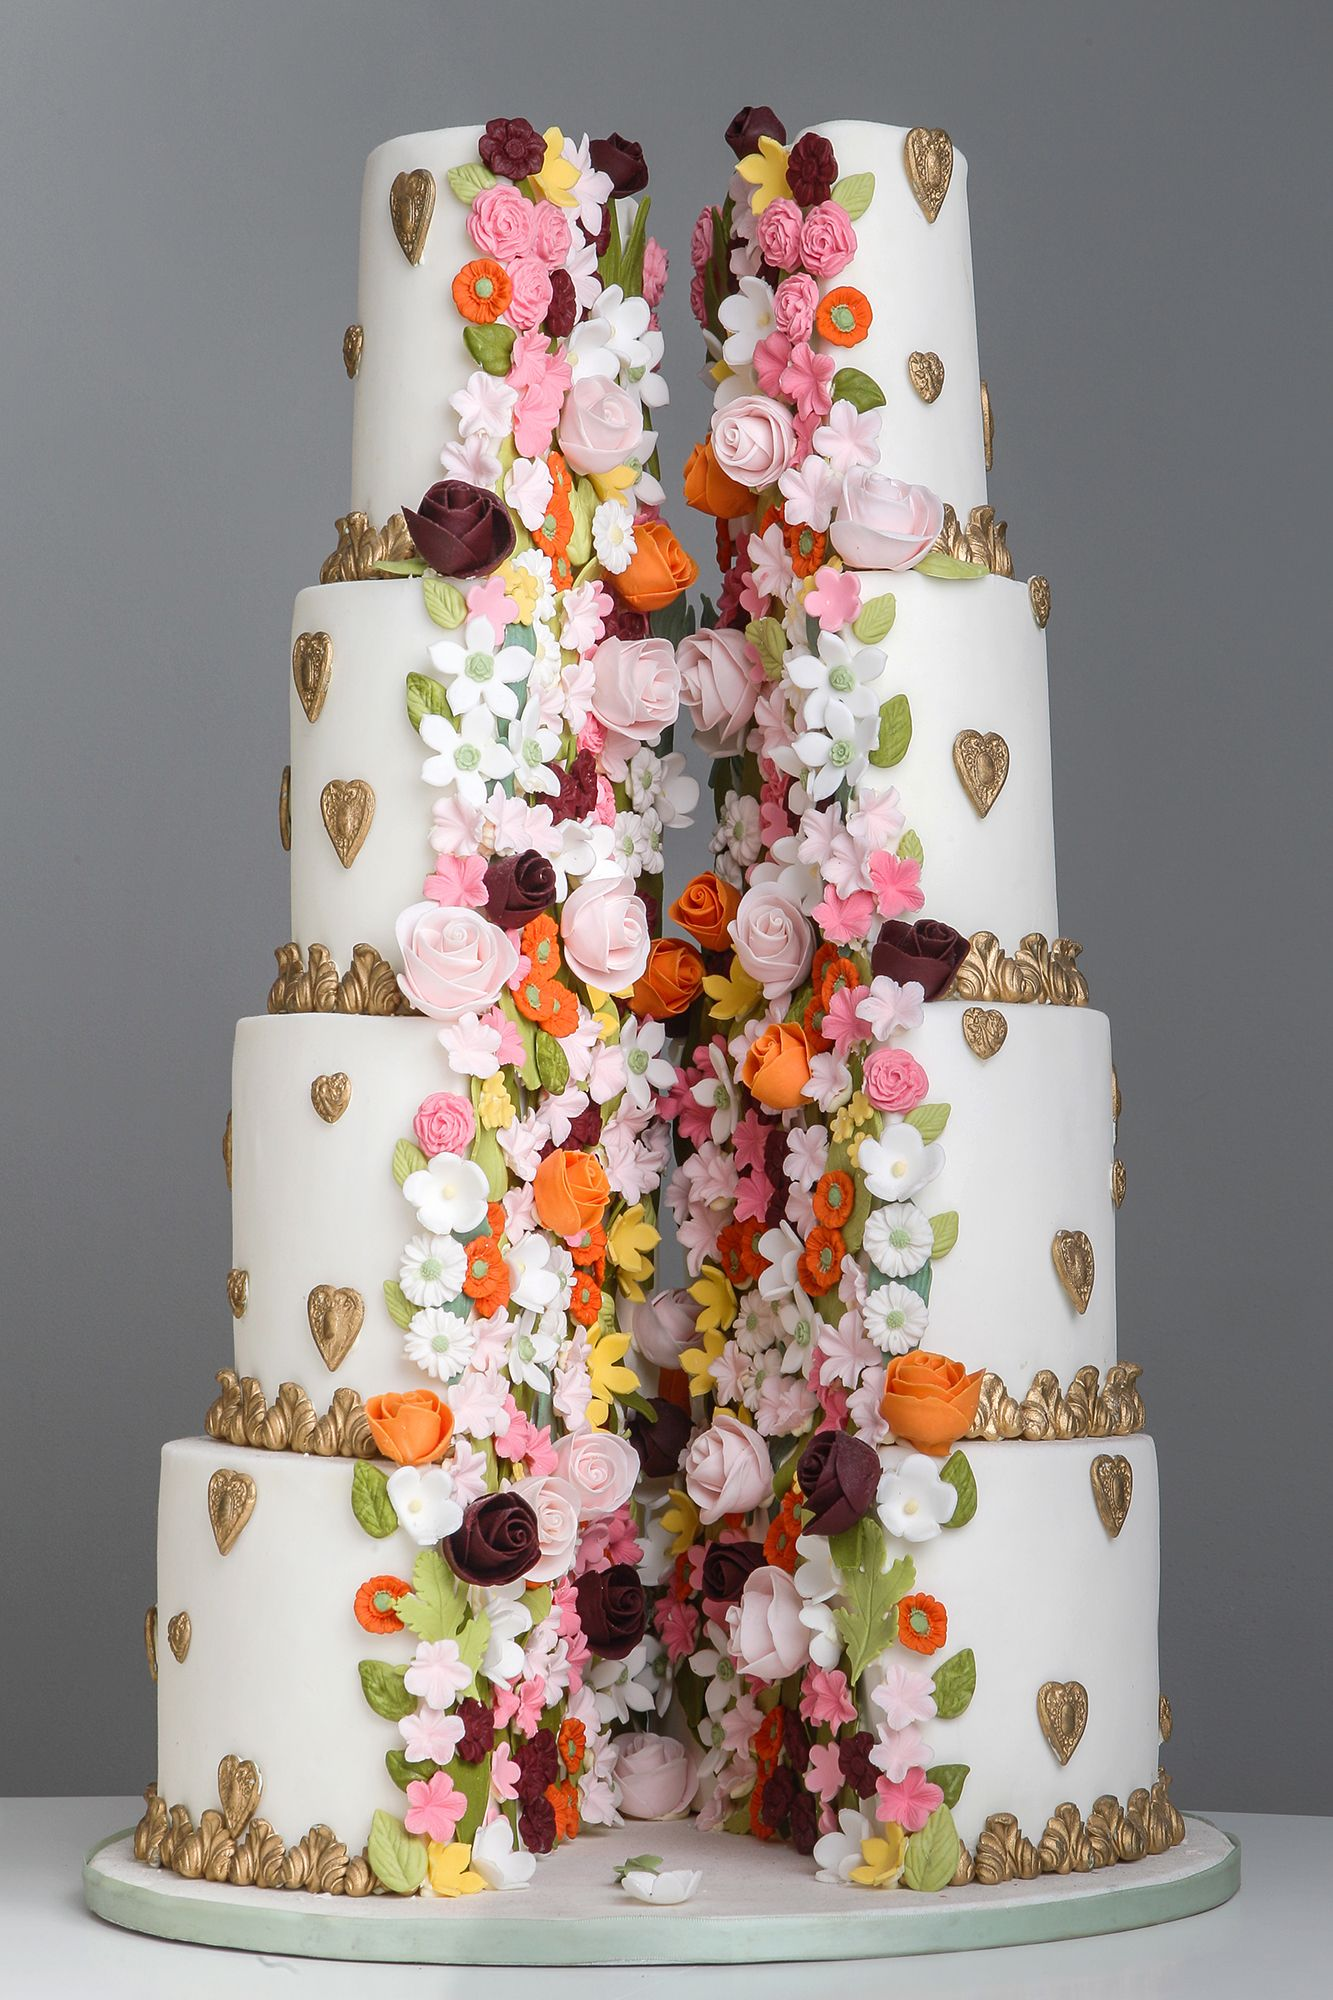 15 elegant fall wedding cakes ideas for fall wedding cake flavors 15 elegant fall wedding cakes ideas for fall wedding cake flavors and design junglespirit Images